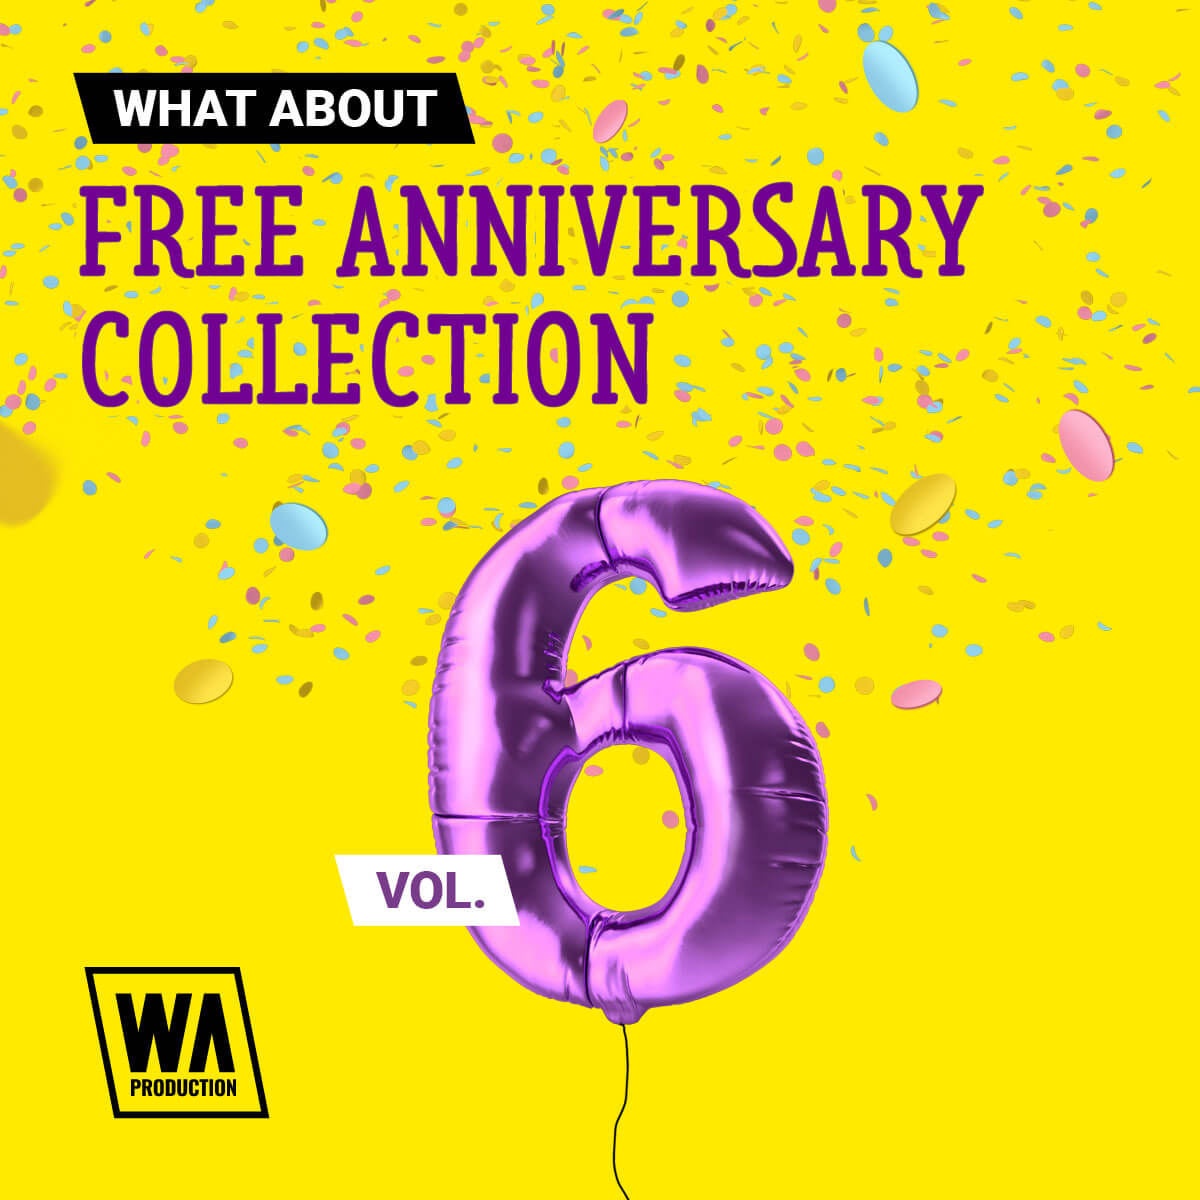 W. A. Production - Free Anniversary Collection Vol. 6 Artwork